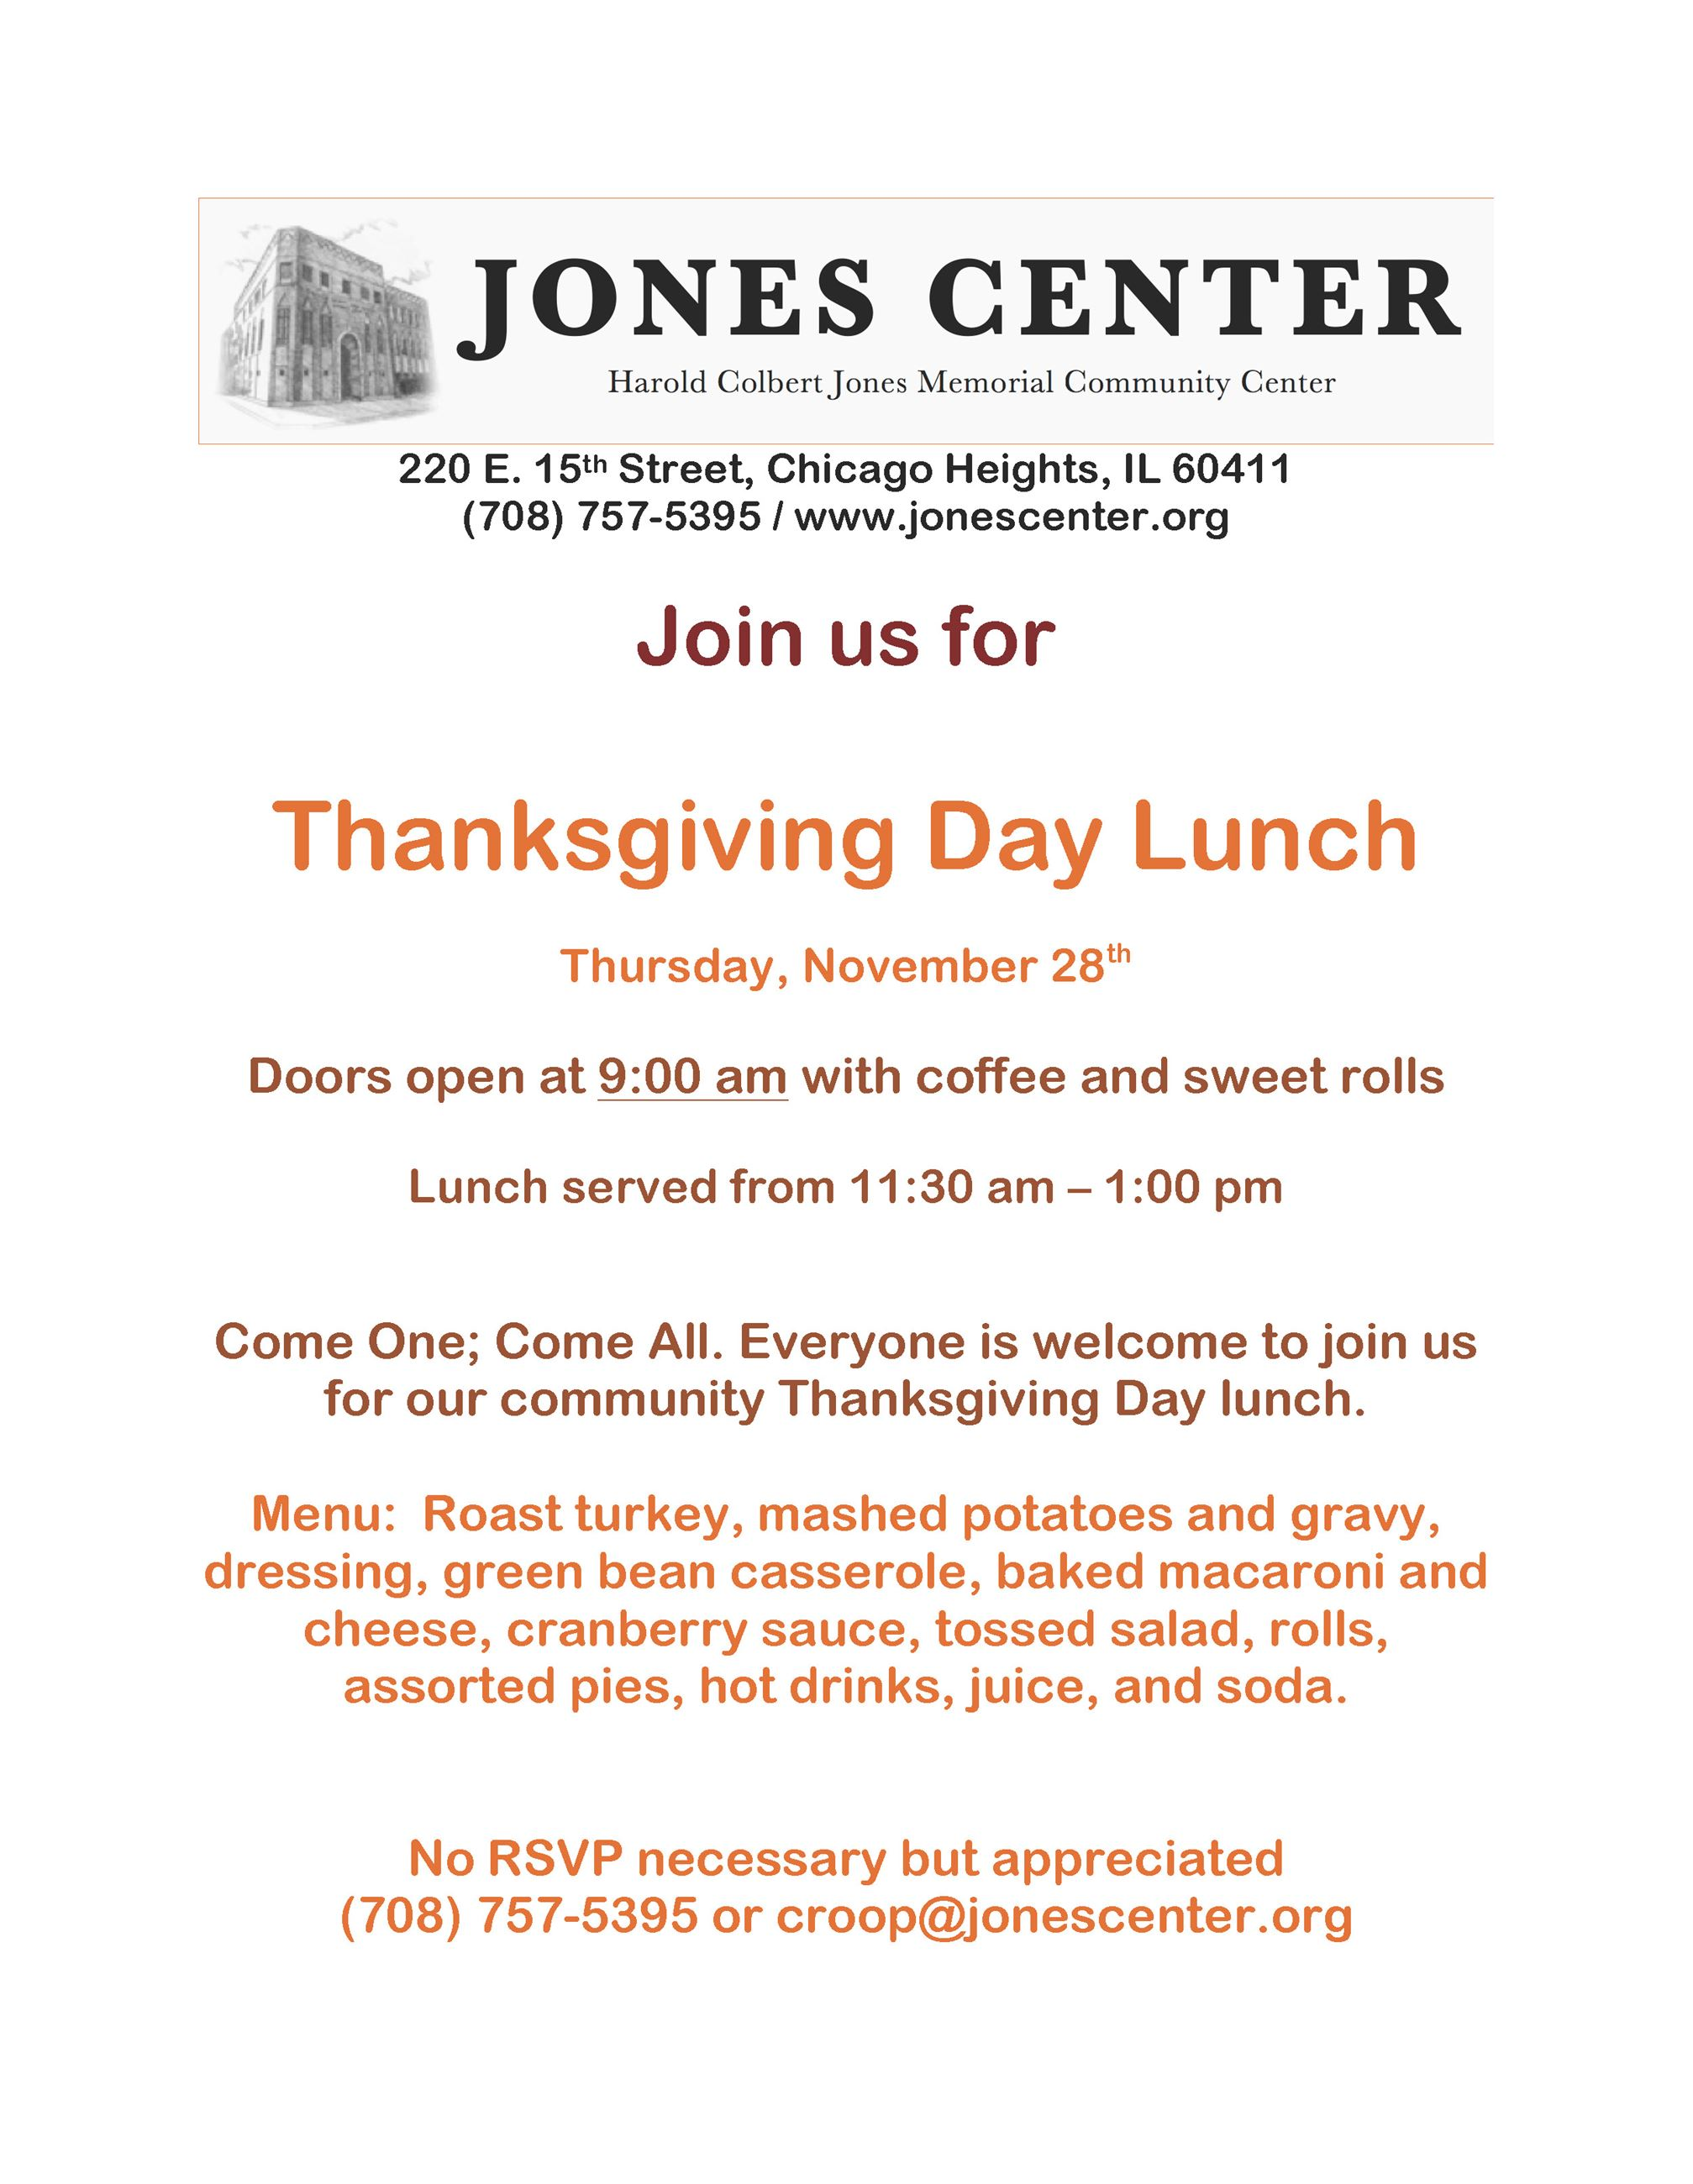 2019 - The Jones Center - Thanksgiving Lunch Flyer - November 28, 2019